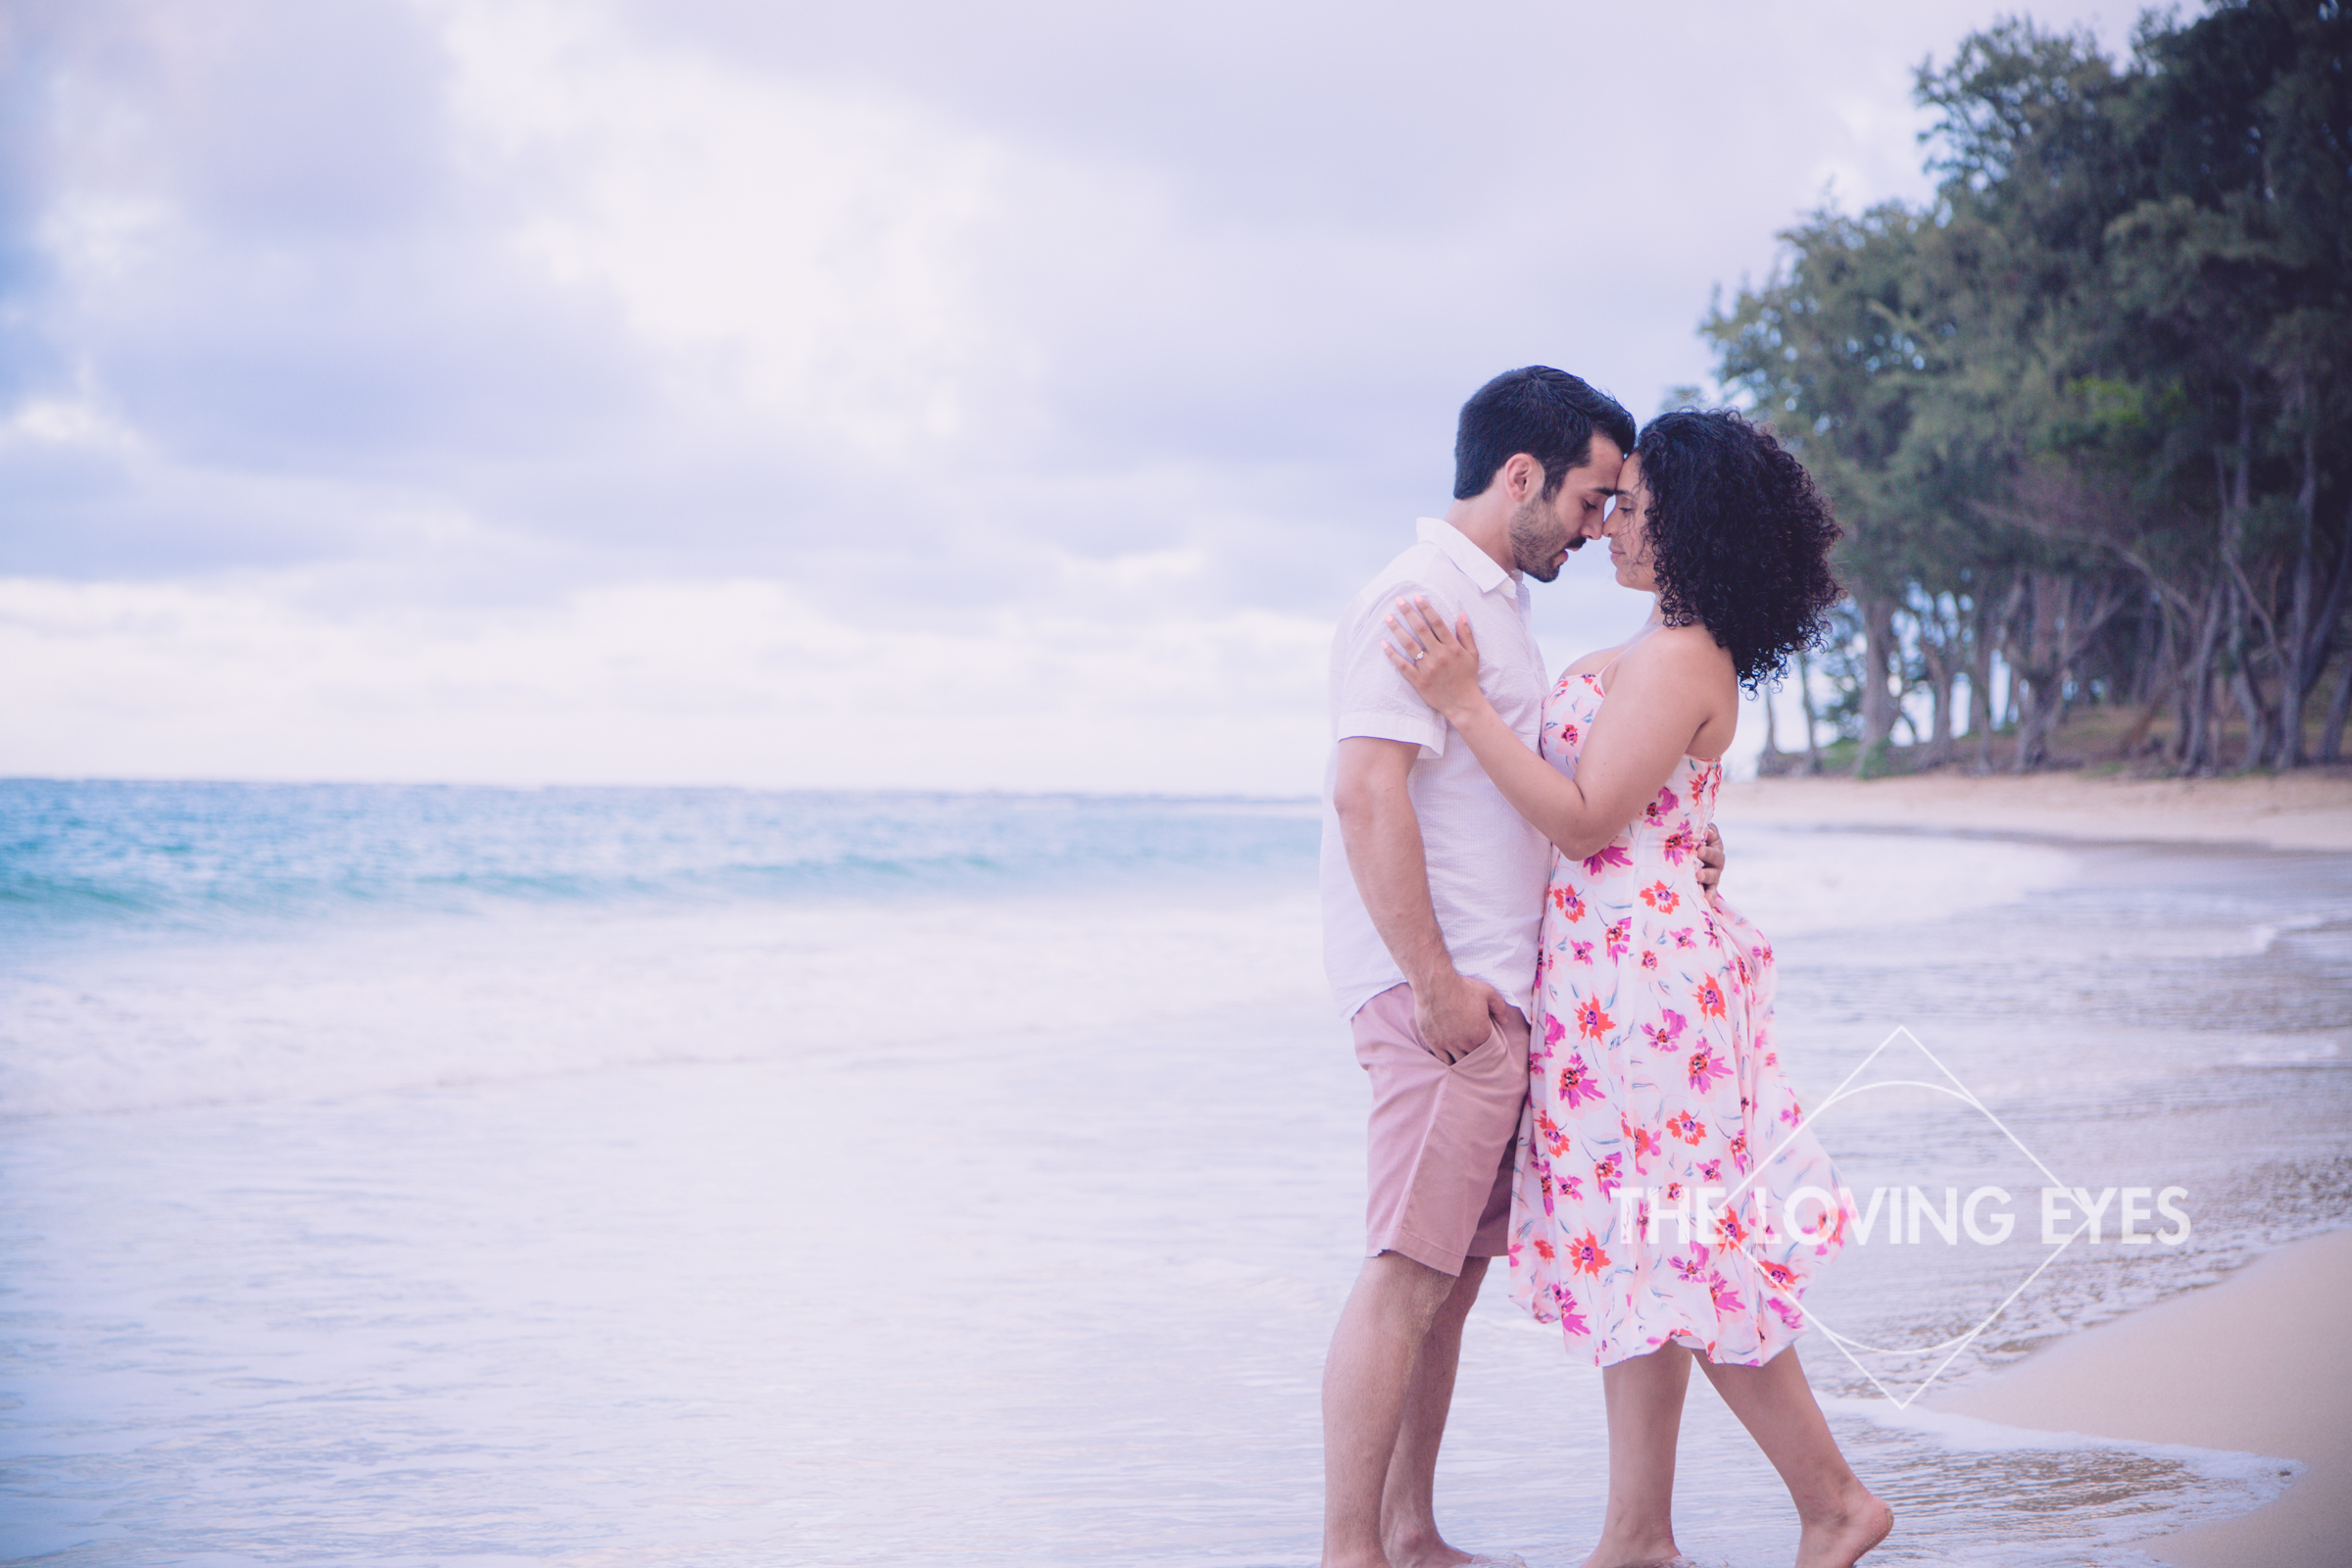 Hawaii-beach-proposal-17.jpg